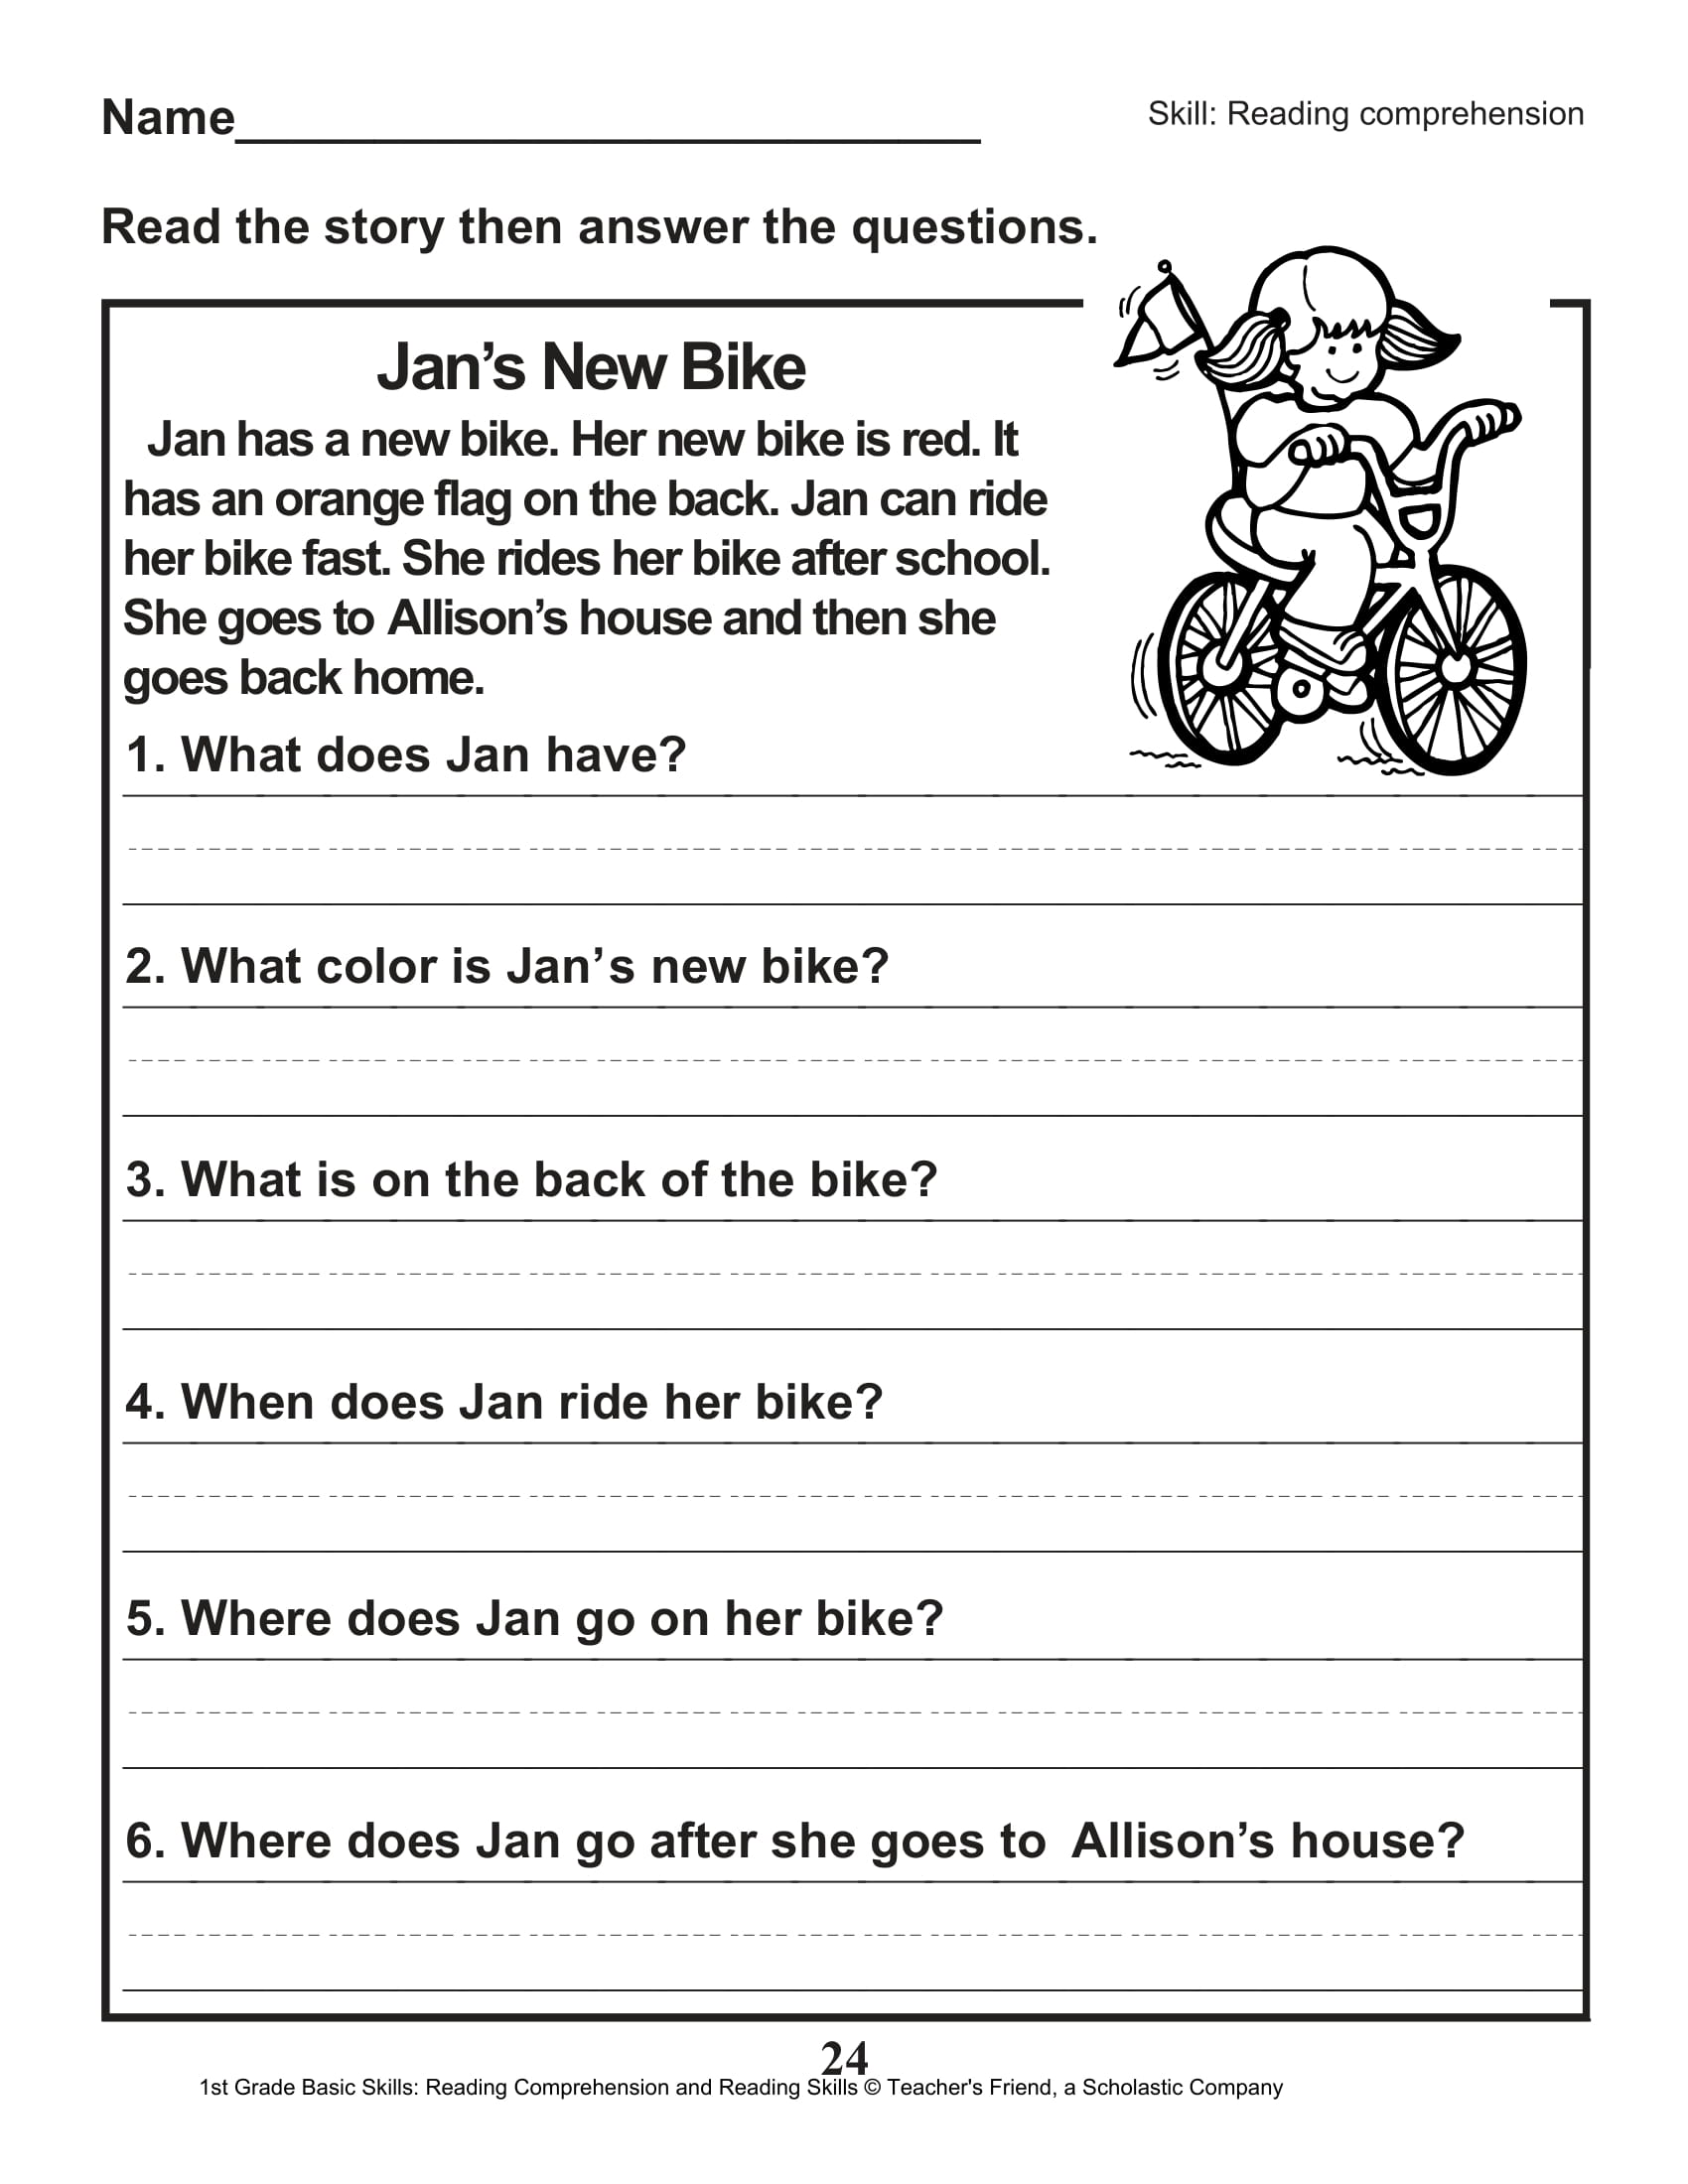 40 Scholastic 1st Grade Reading Comprehension Skills